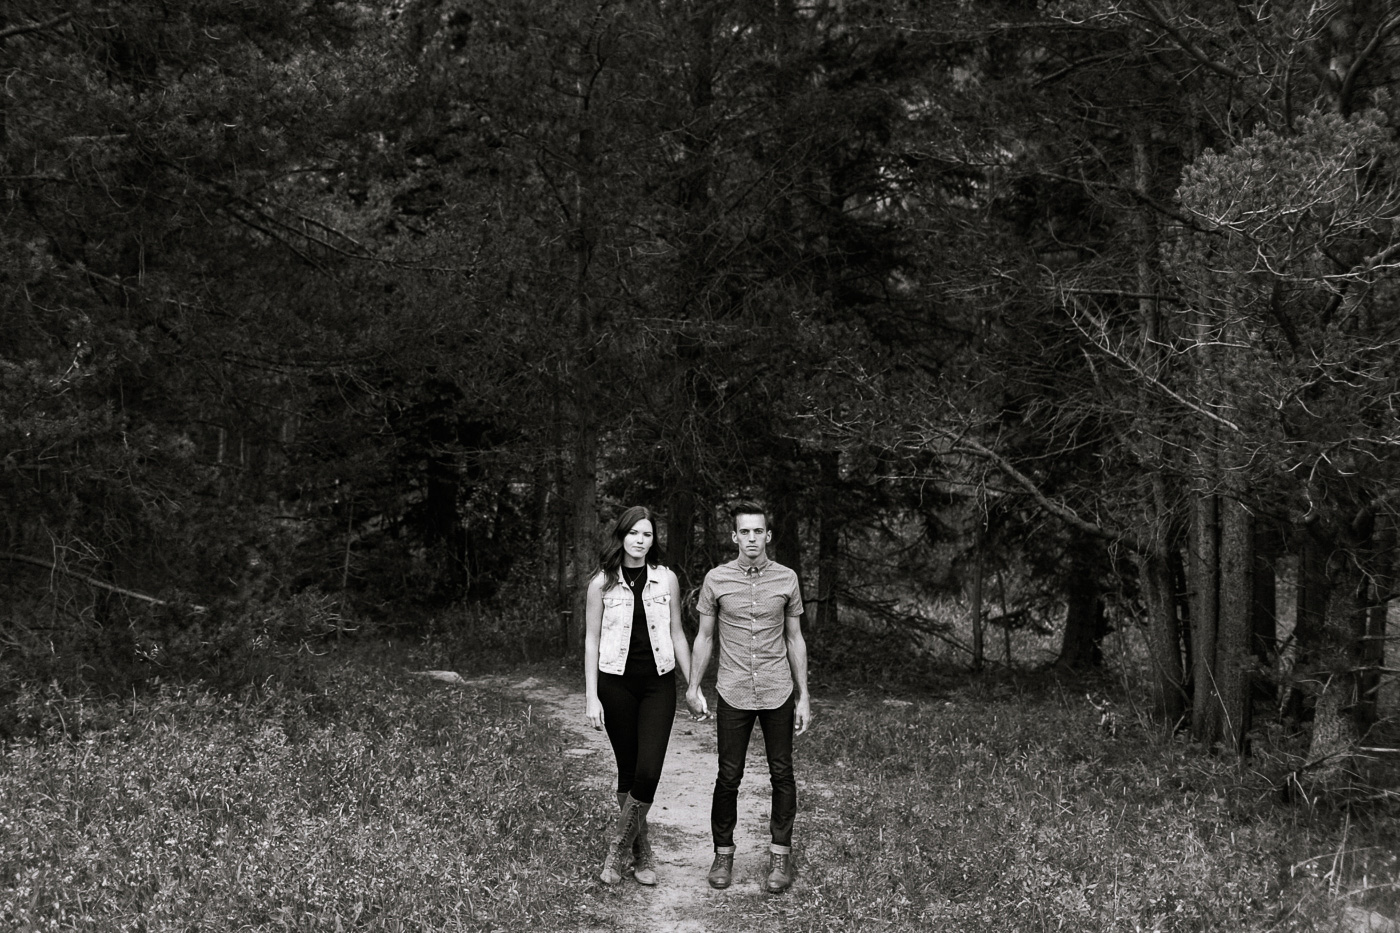 Couple Holding Hands Beside Forest in Black and White